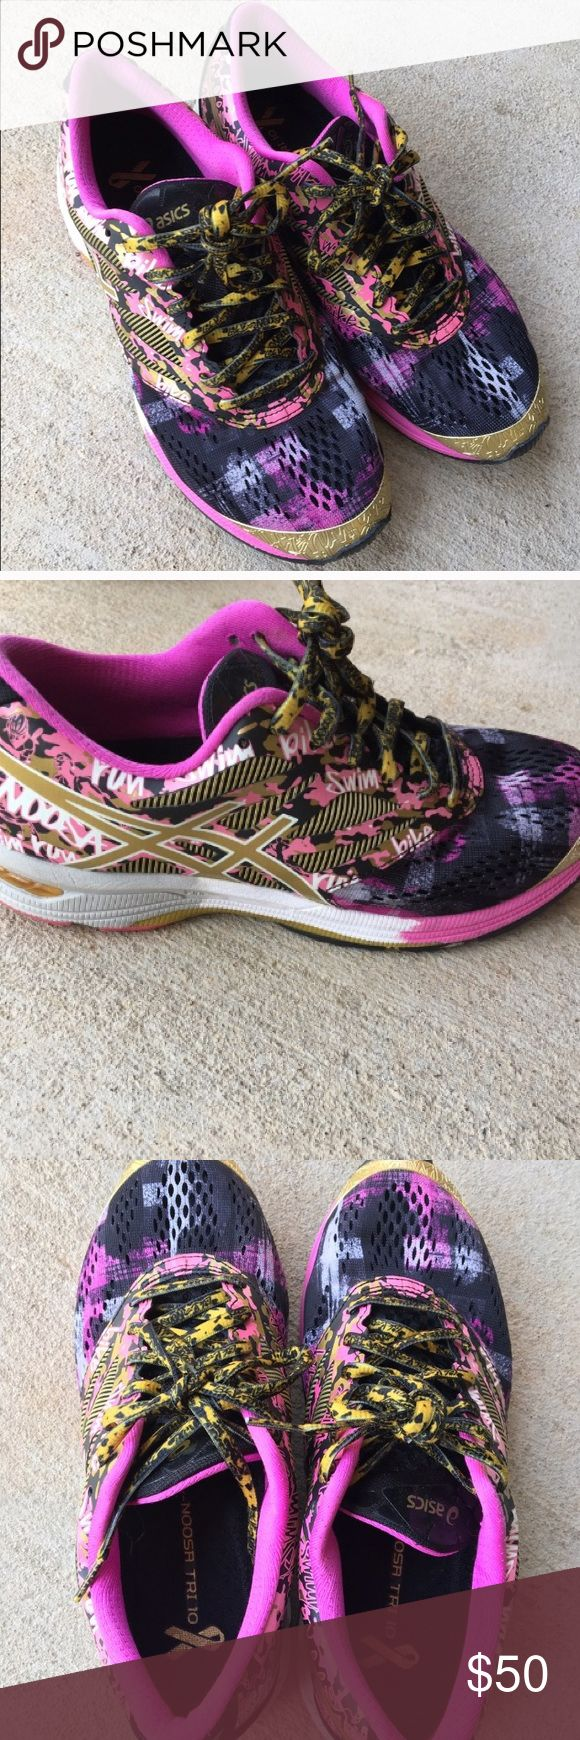 Asics Gel Noosa Tri 10 running shoe Asics Gel Noosa Tri 10 running shoe.                      Tag says size 9 but it runs small. I bought onPosh but they are too small for me. Asics Shoes Athletic Shoes